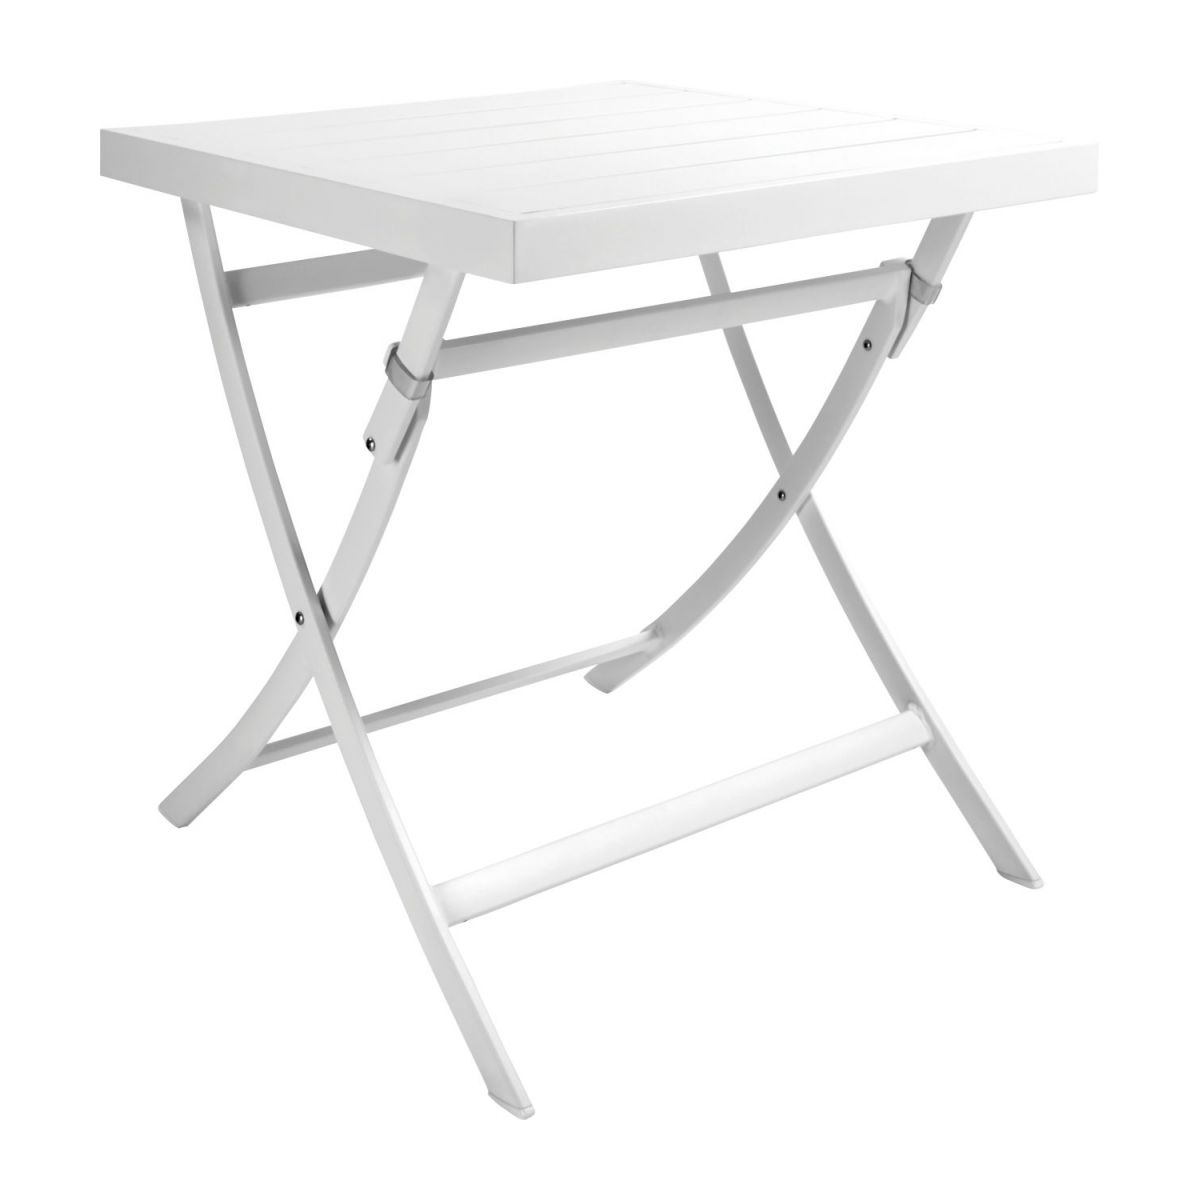 BLANCHE Piètement de table - Habitat